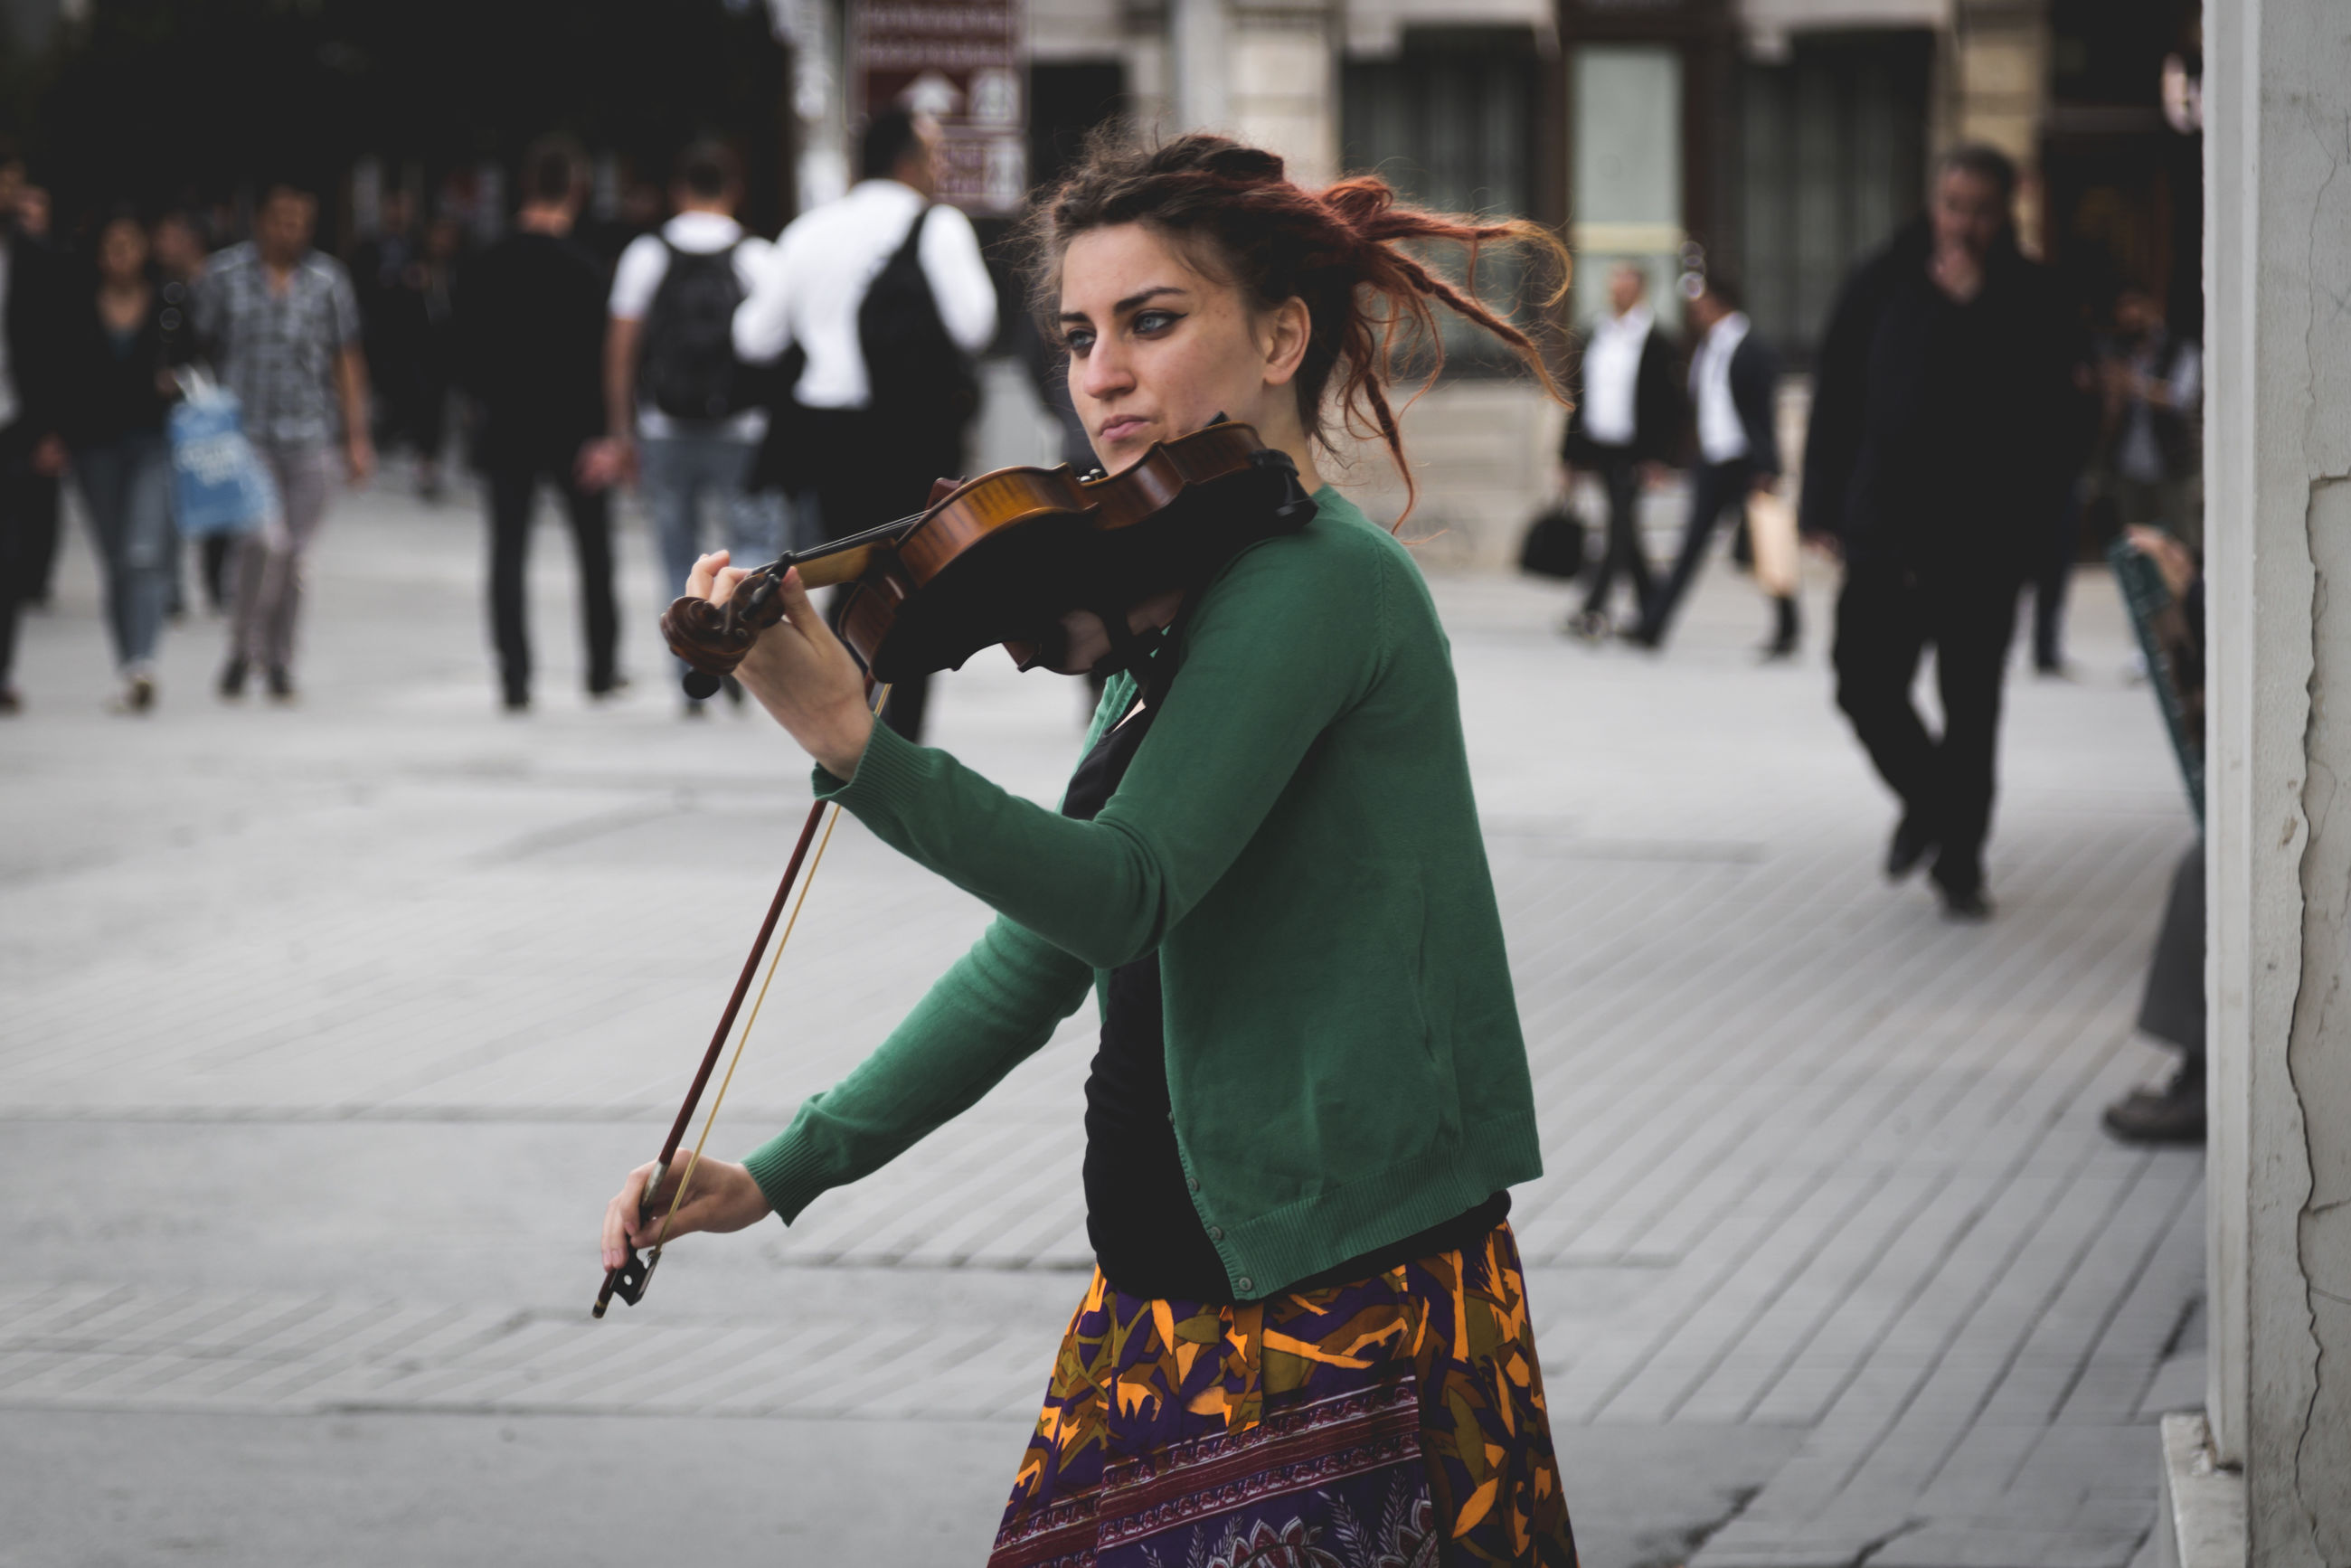 focus on foreground, incidental people, one person, holding, real people, lifestyles, young adult, outdoors, playing, music, day, young women, musician, beautiful woman, city, adult, people